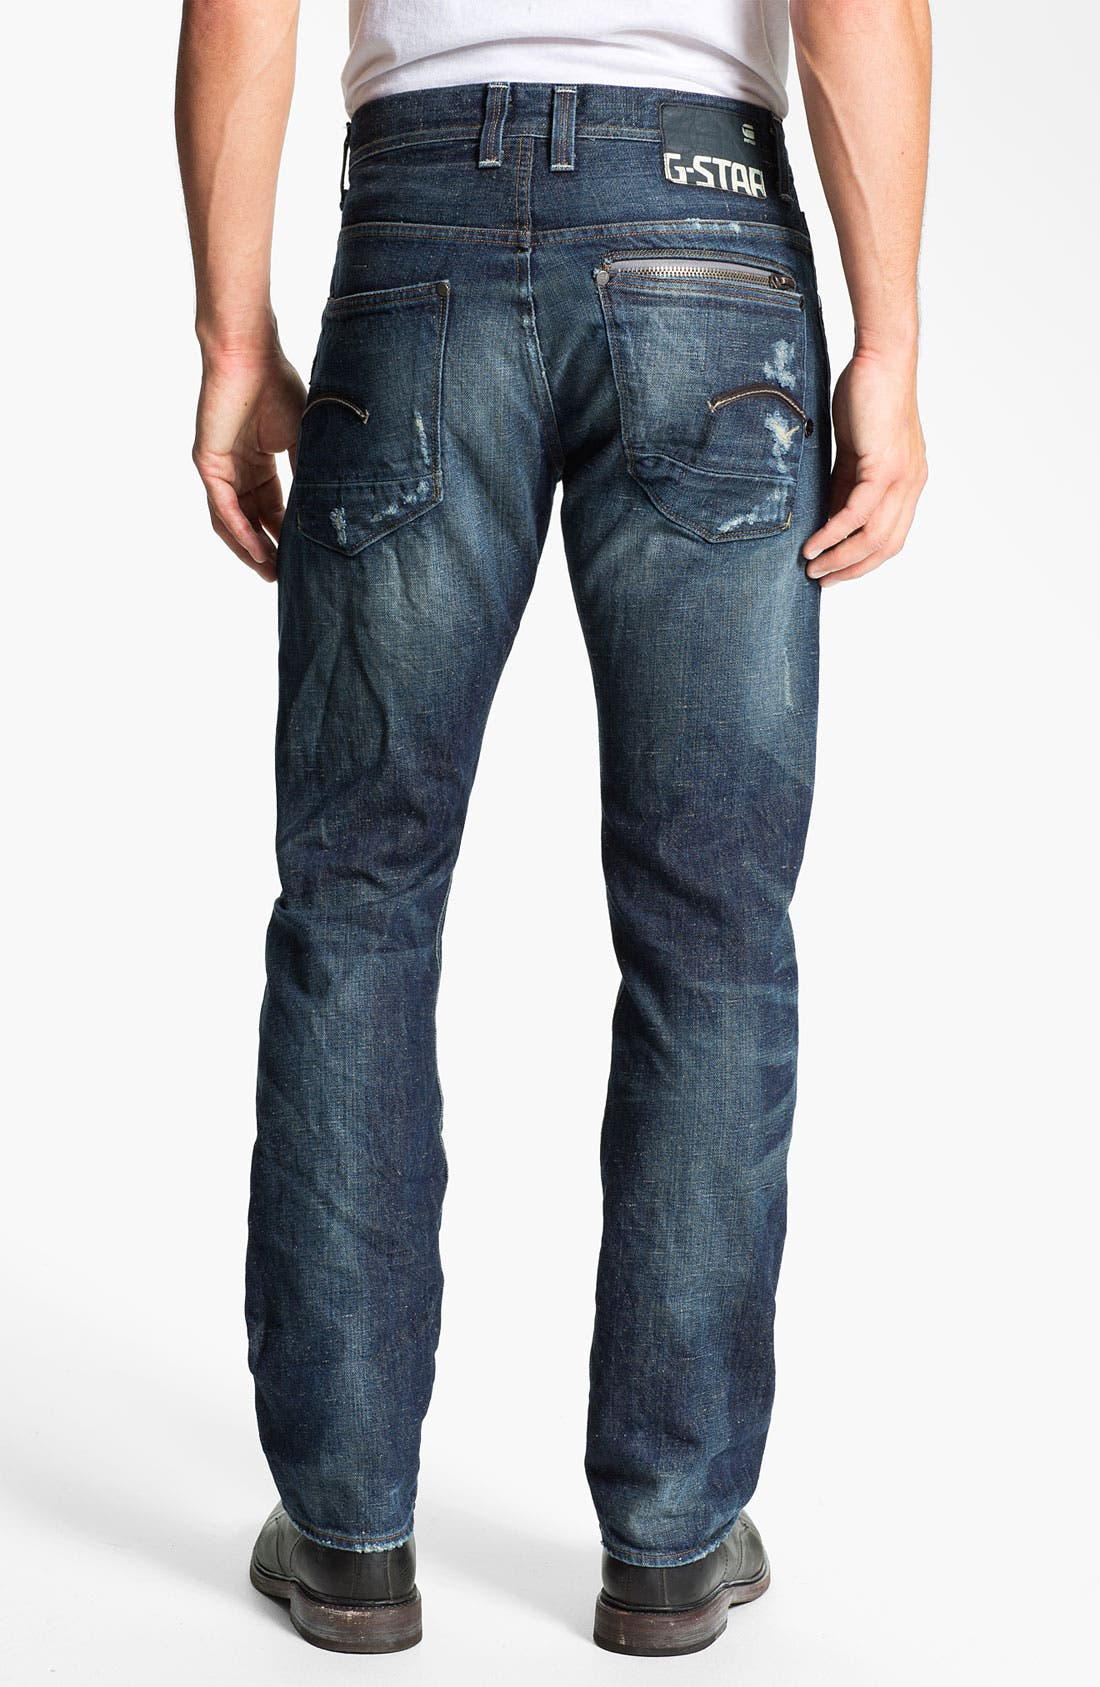 Alternate Image 1 Selected - G-Star Raw 'Attacc' Straight Leg Jeans (Medium Destroy)